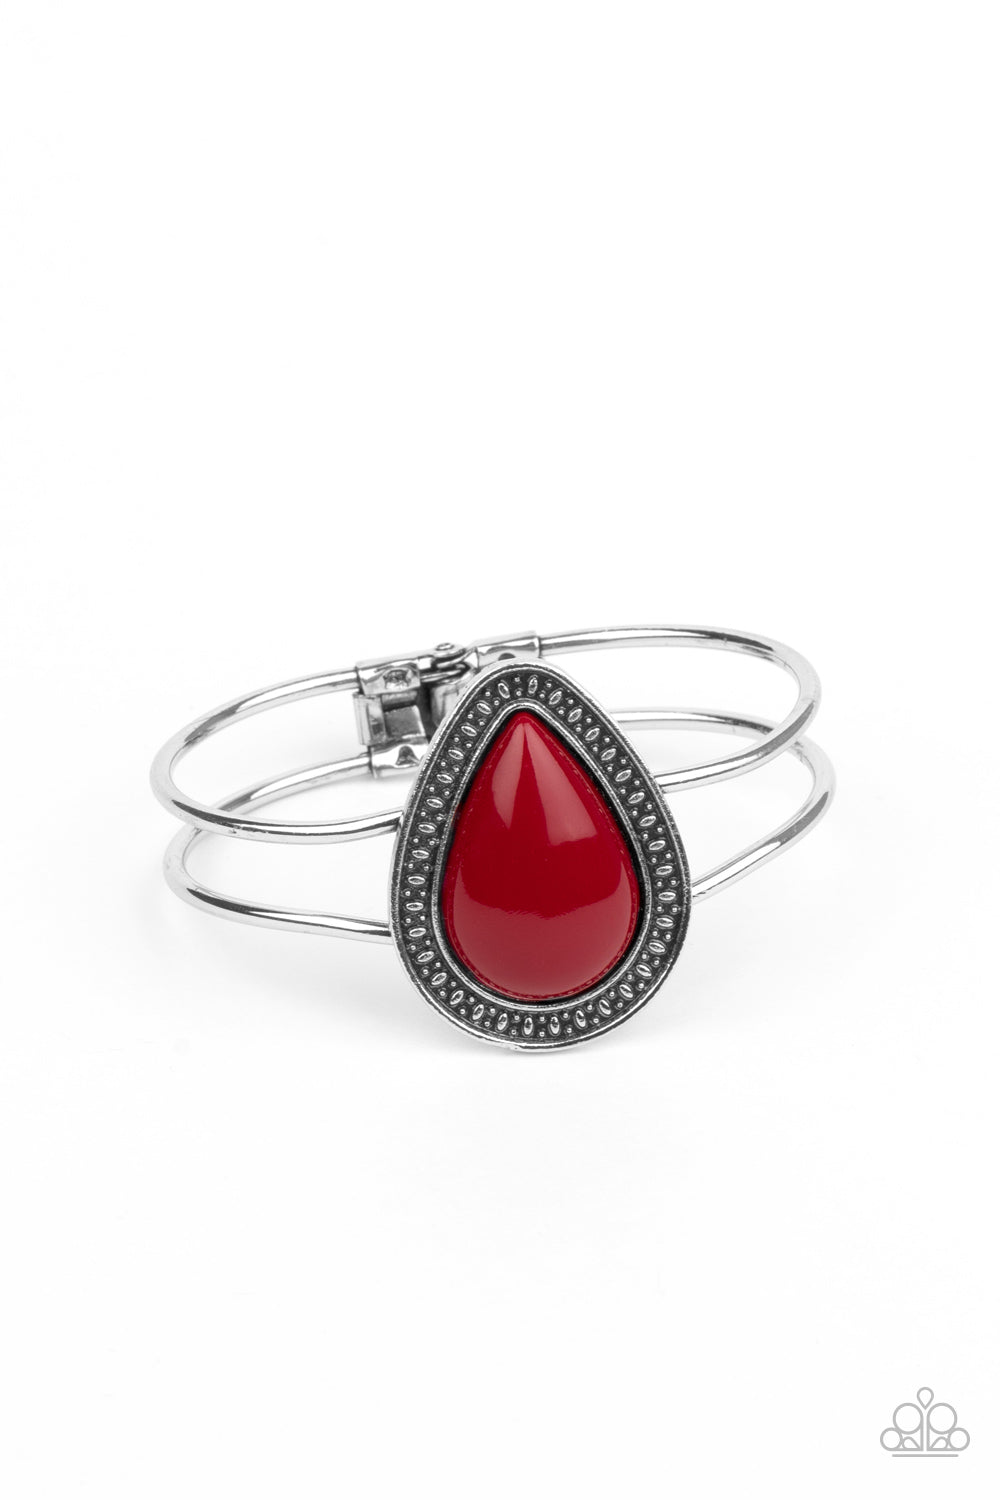 Over The Top Pop - Red Paparazzi Jewelry